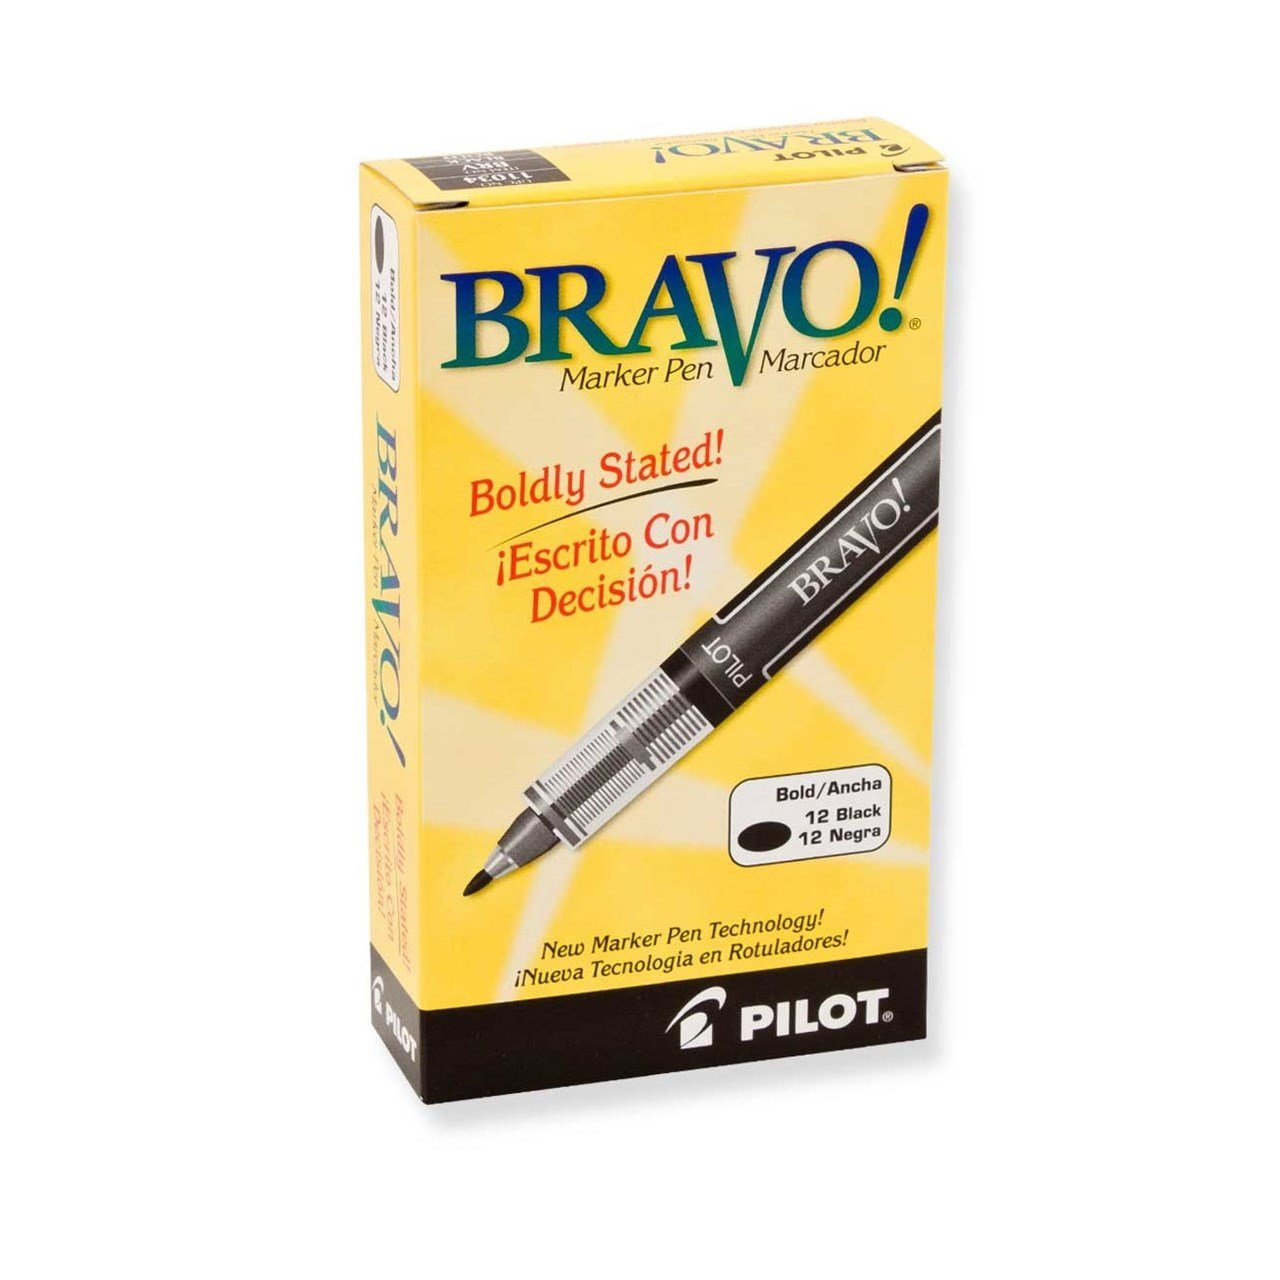 Pilot Bravo Bold Point Marker Pen - Black - 12-Pack by Pilot (Image #1)